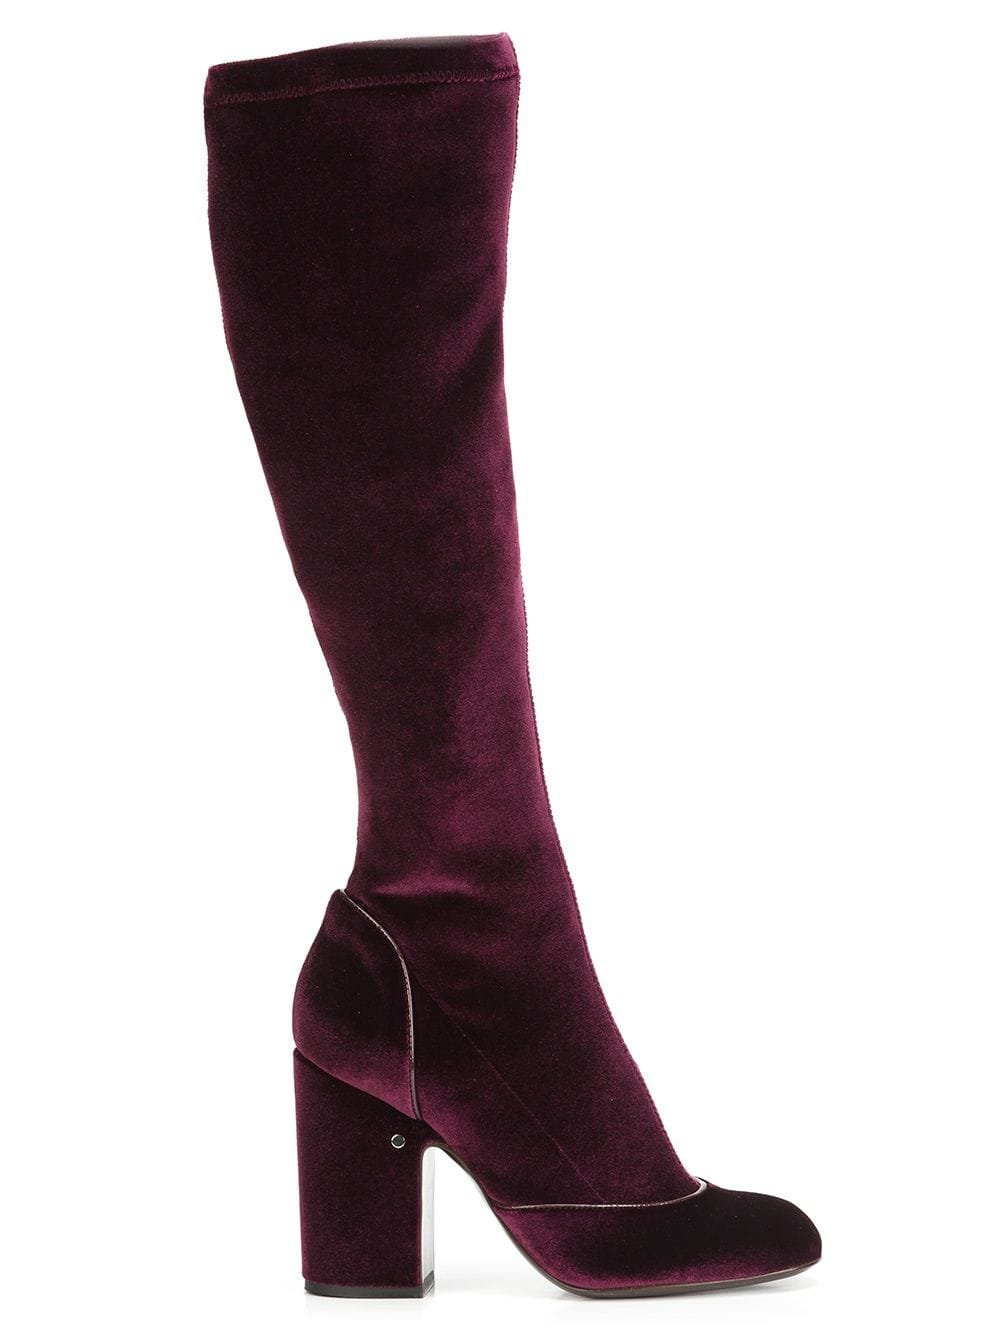 Laurence Dacade pull-on Knee Length Boots - Farfetch